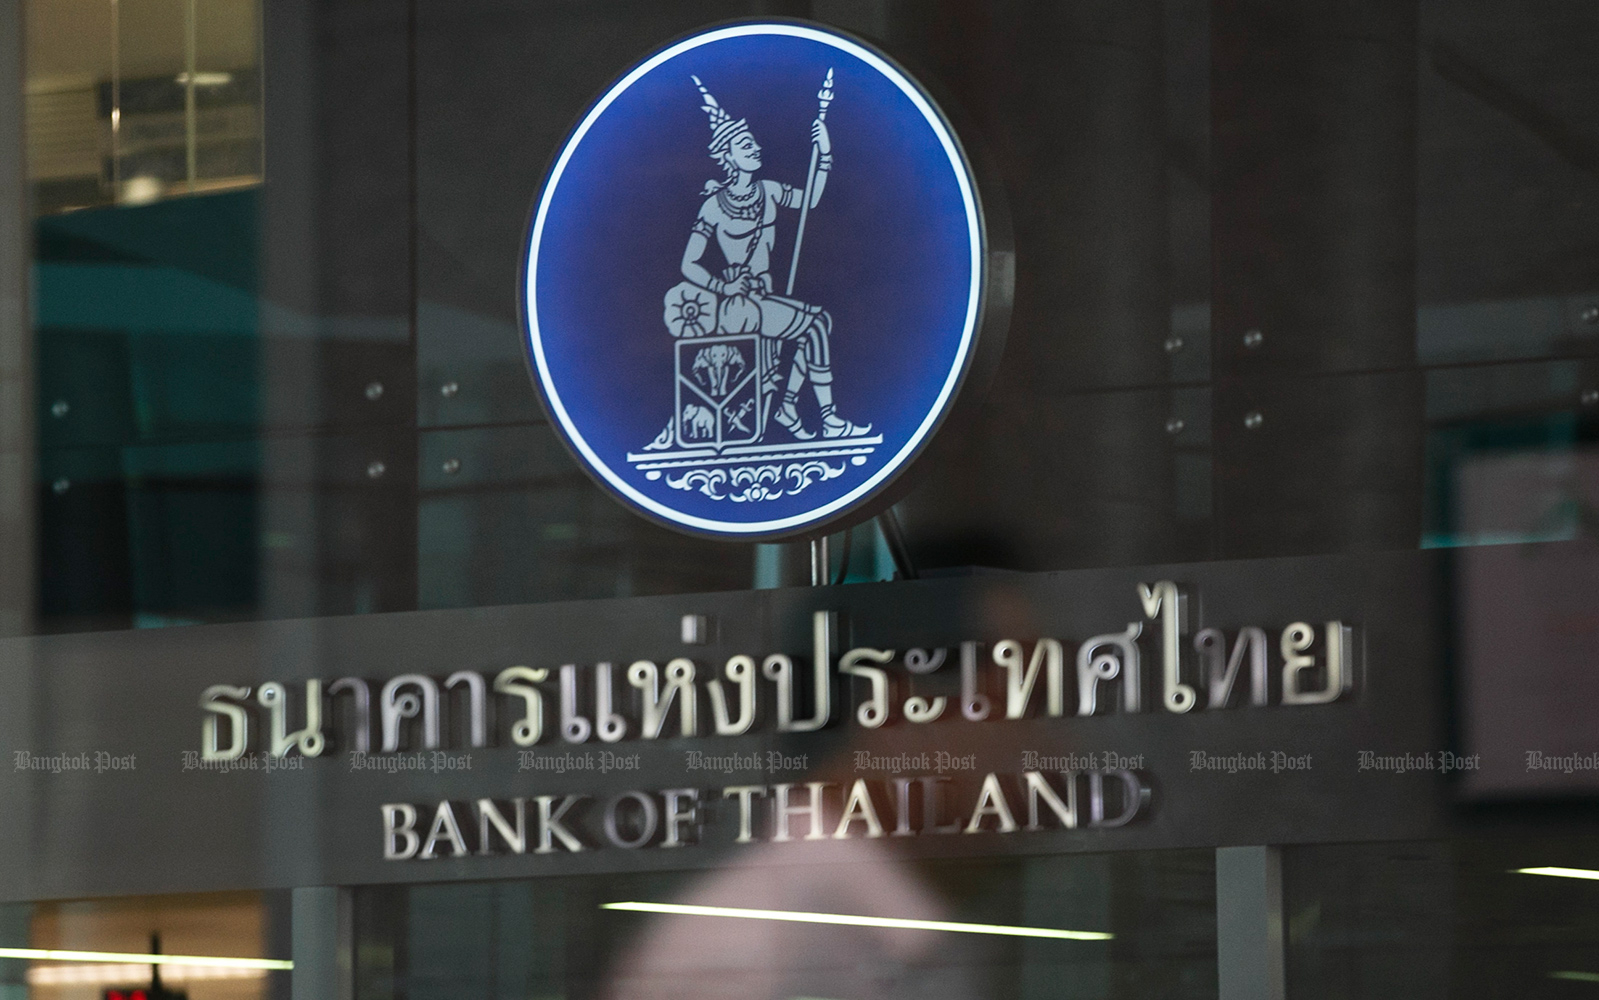 The Bank of Thailand is closely monitoring the situation following an emergency interest rate cut by the Federal Reserve. (Bangkok Post photo)